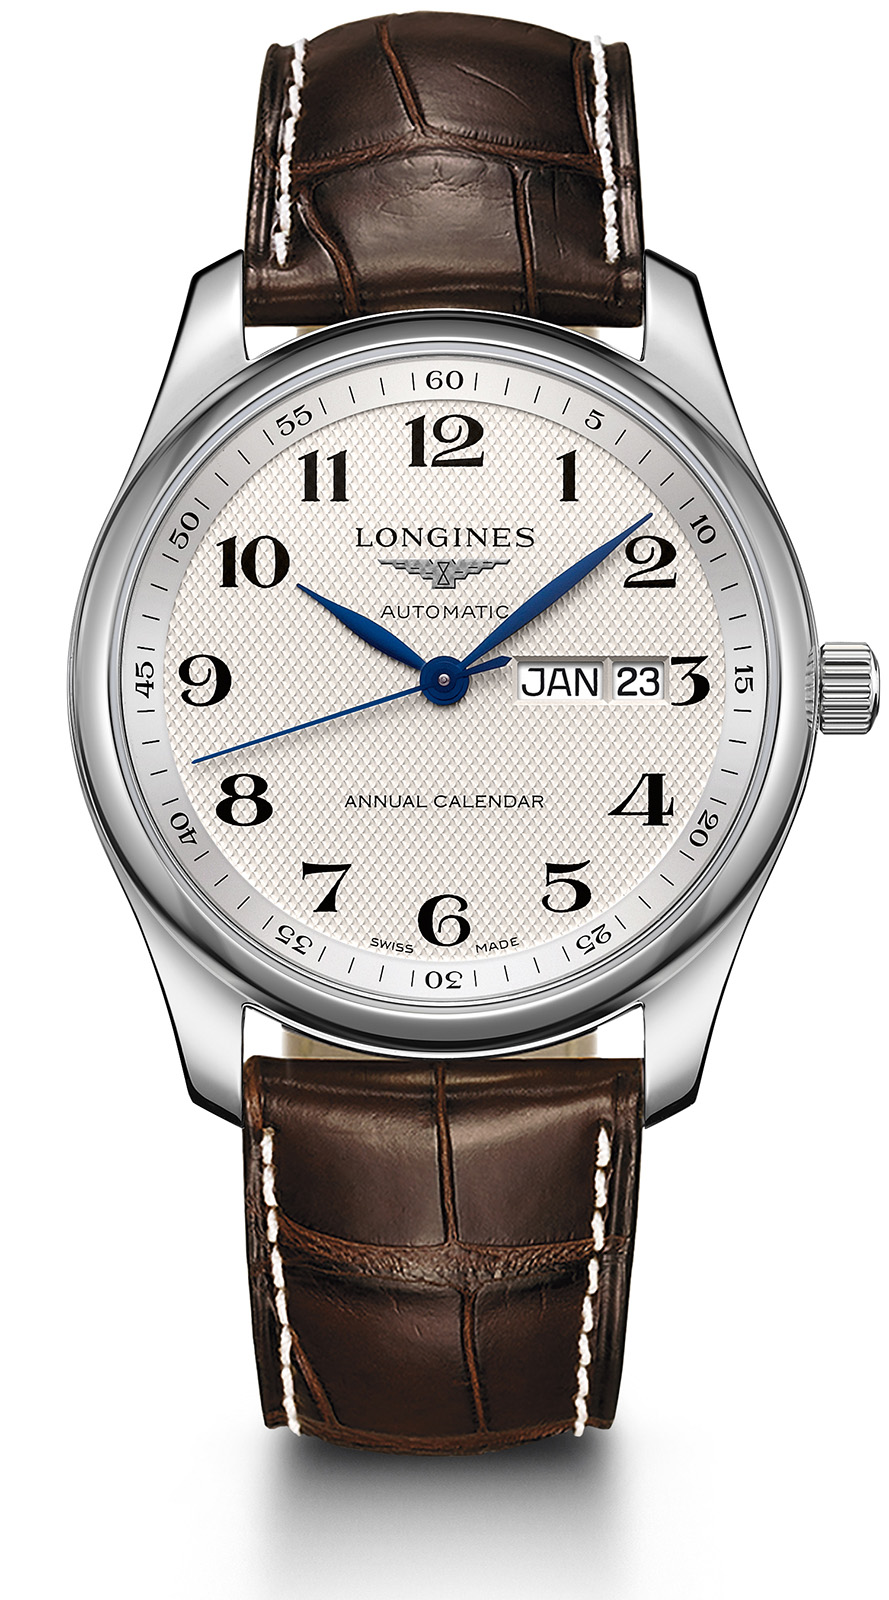 The Longines Master Collection Annual Calendar L2.910.4.78.3